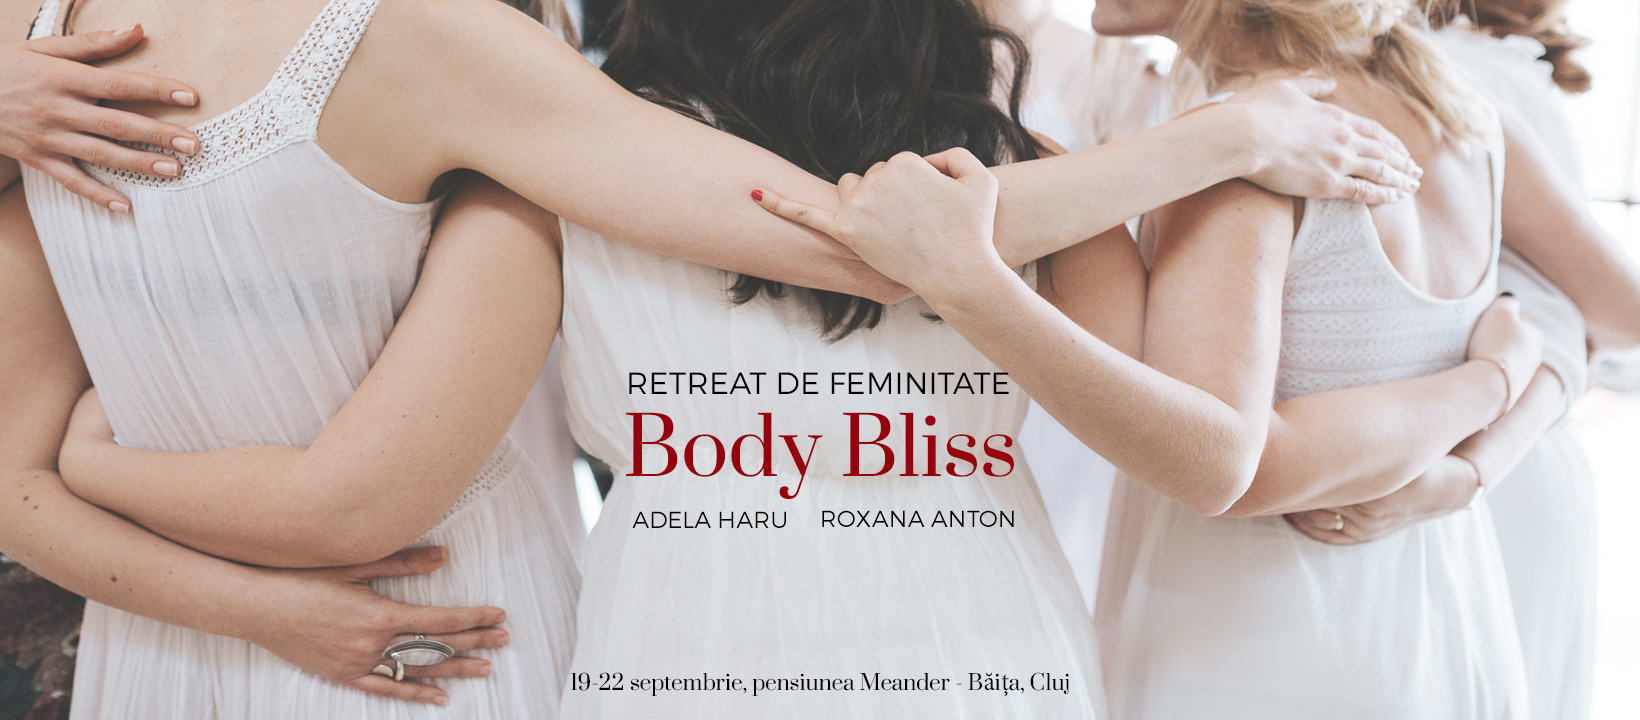 Body Bliss - Retreat de feminitate